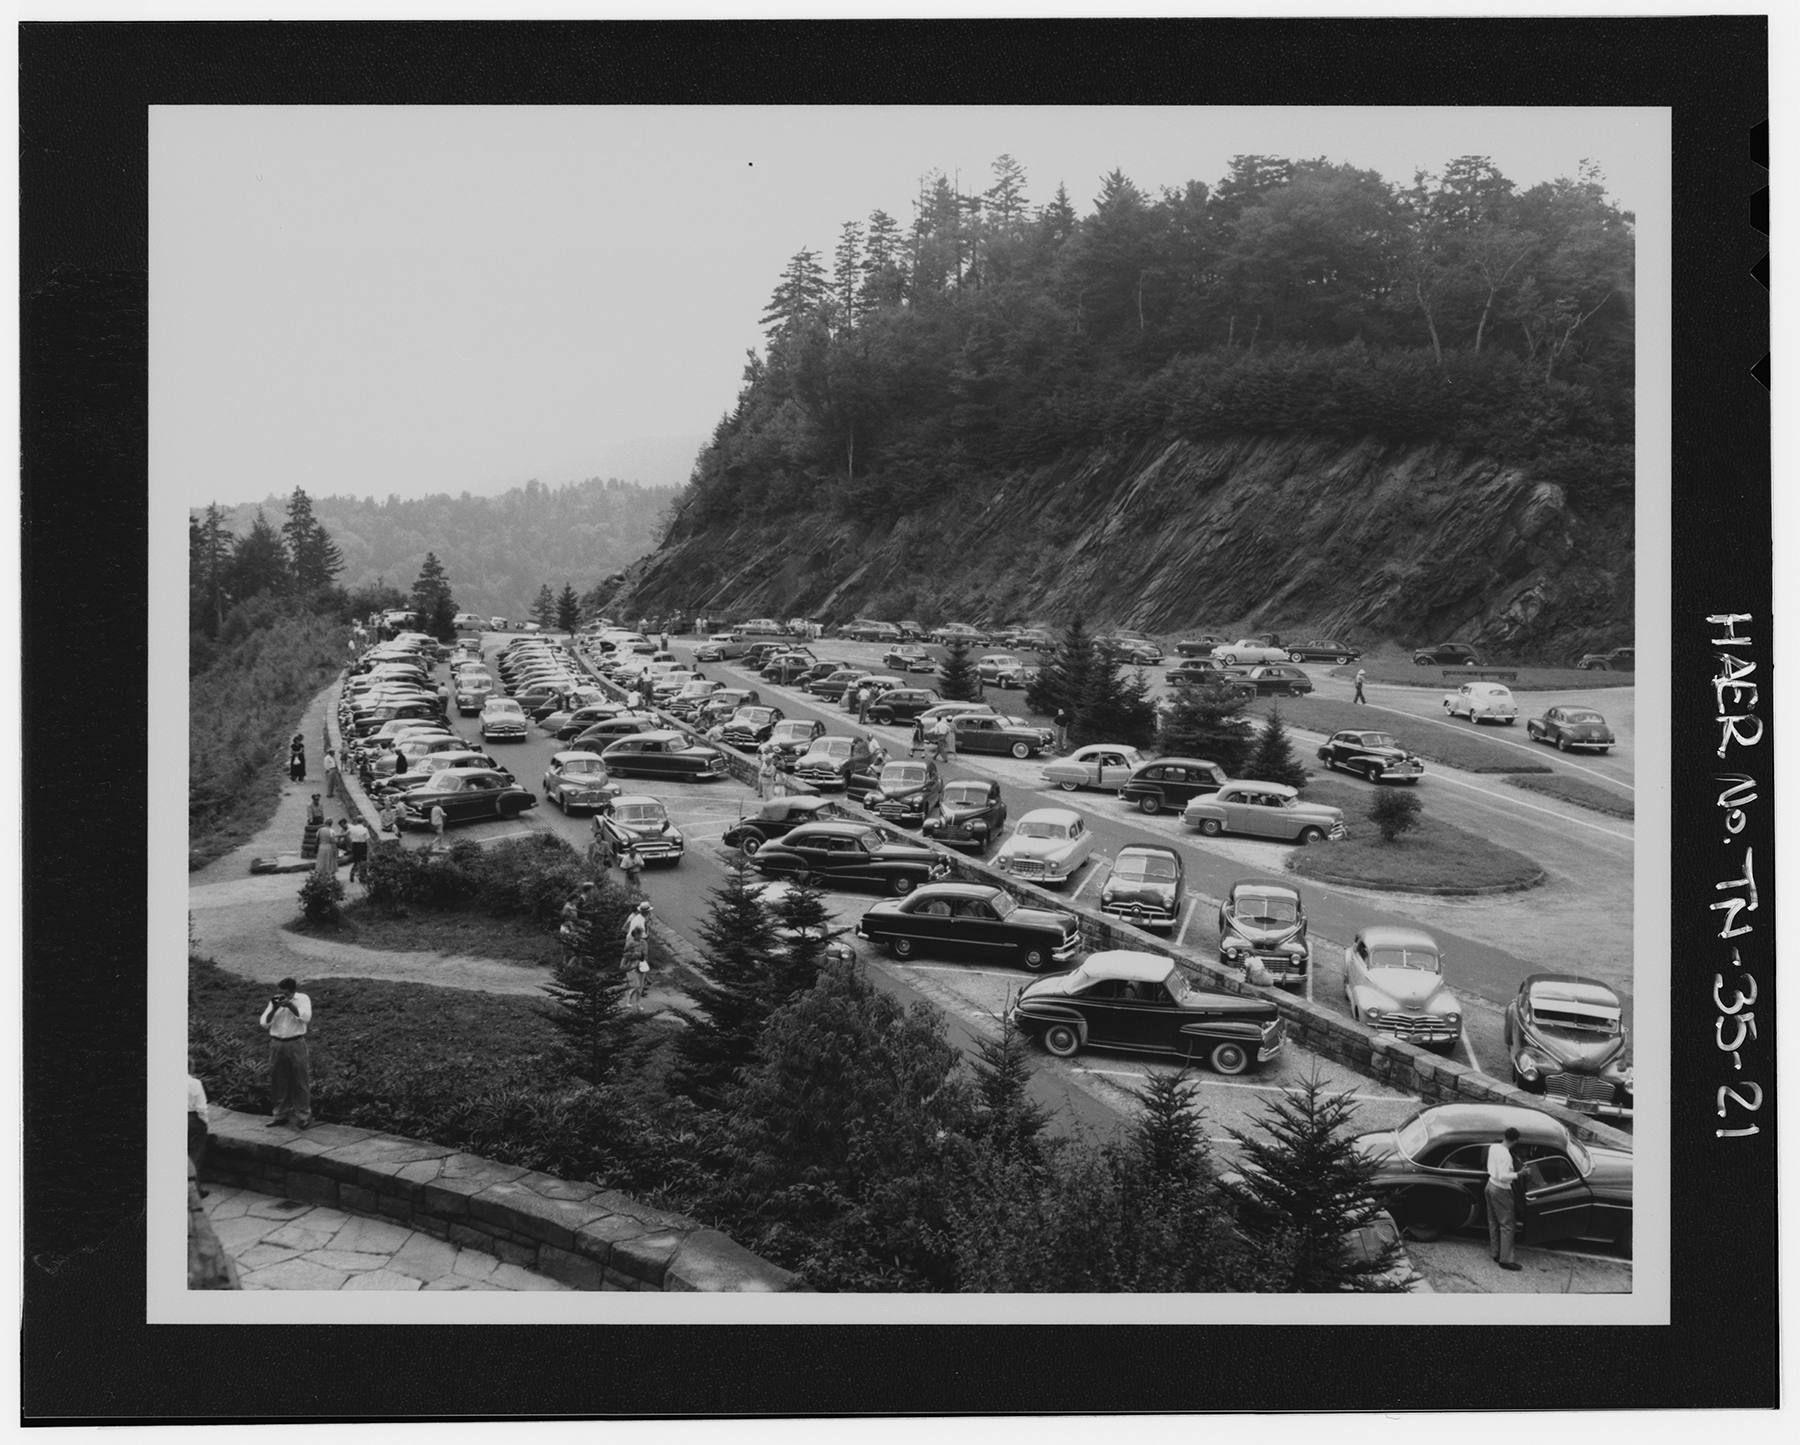 a full parking lot in a national park